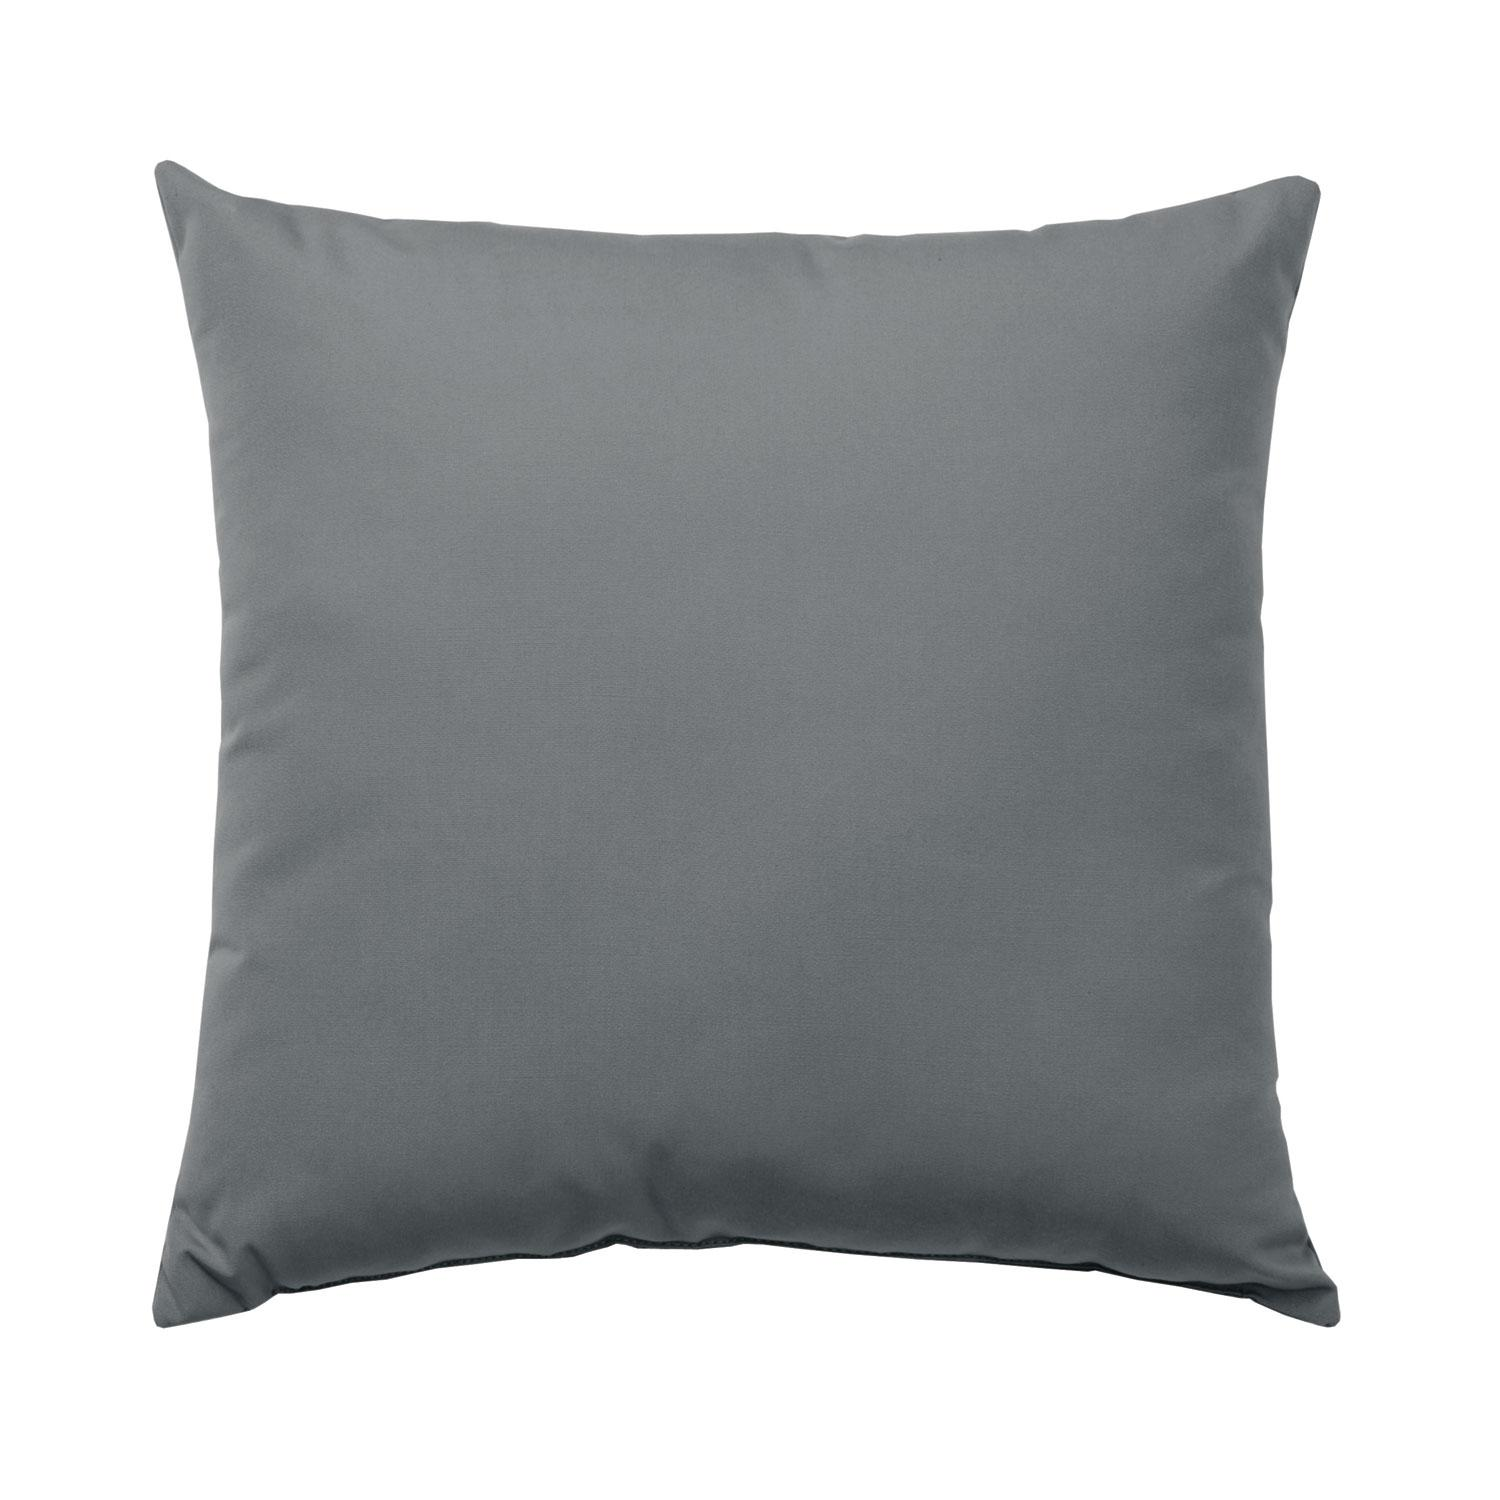 Sunbrella%AE Outdoor Throw Pillow (20x20x5